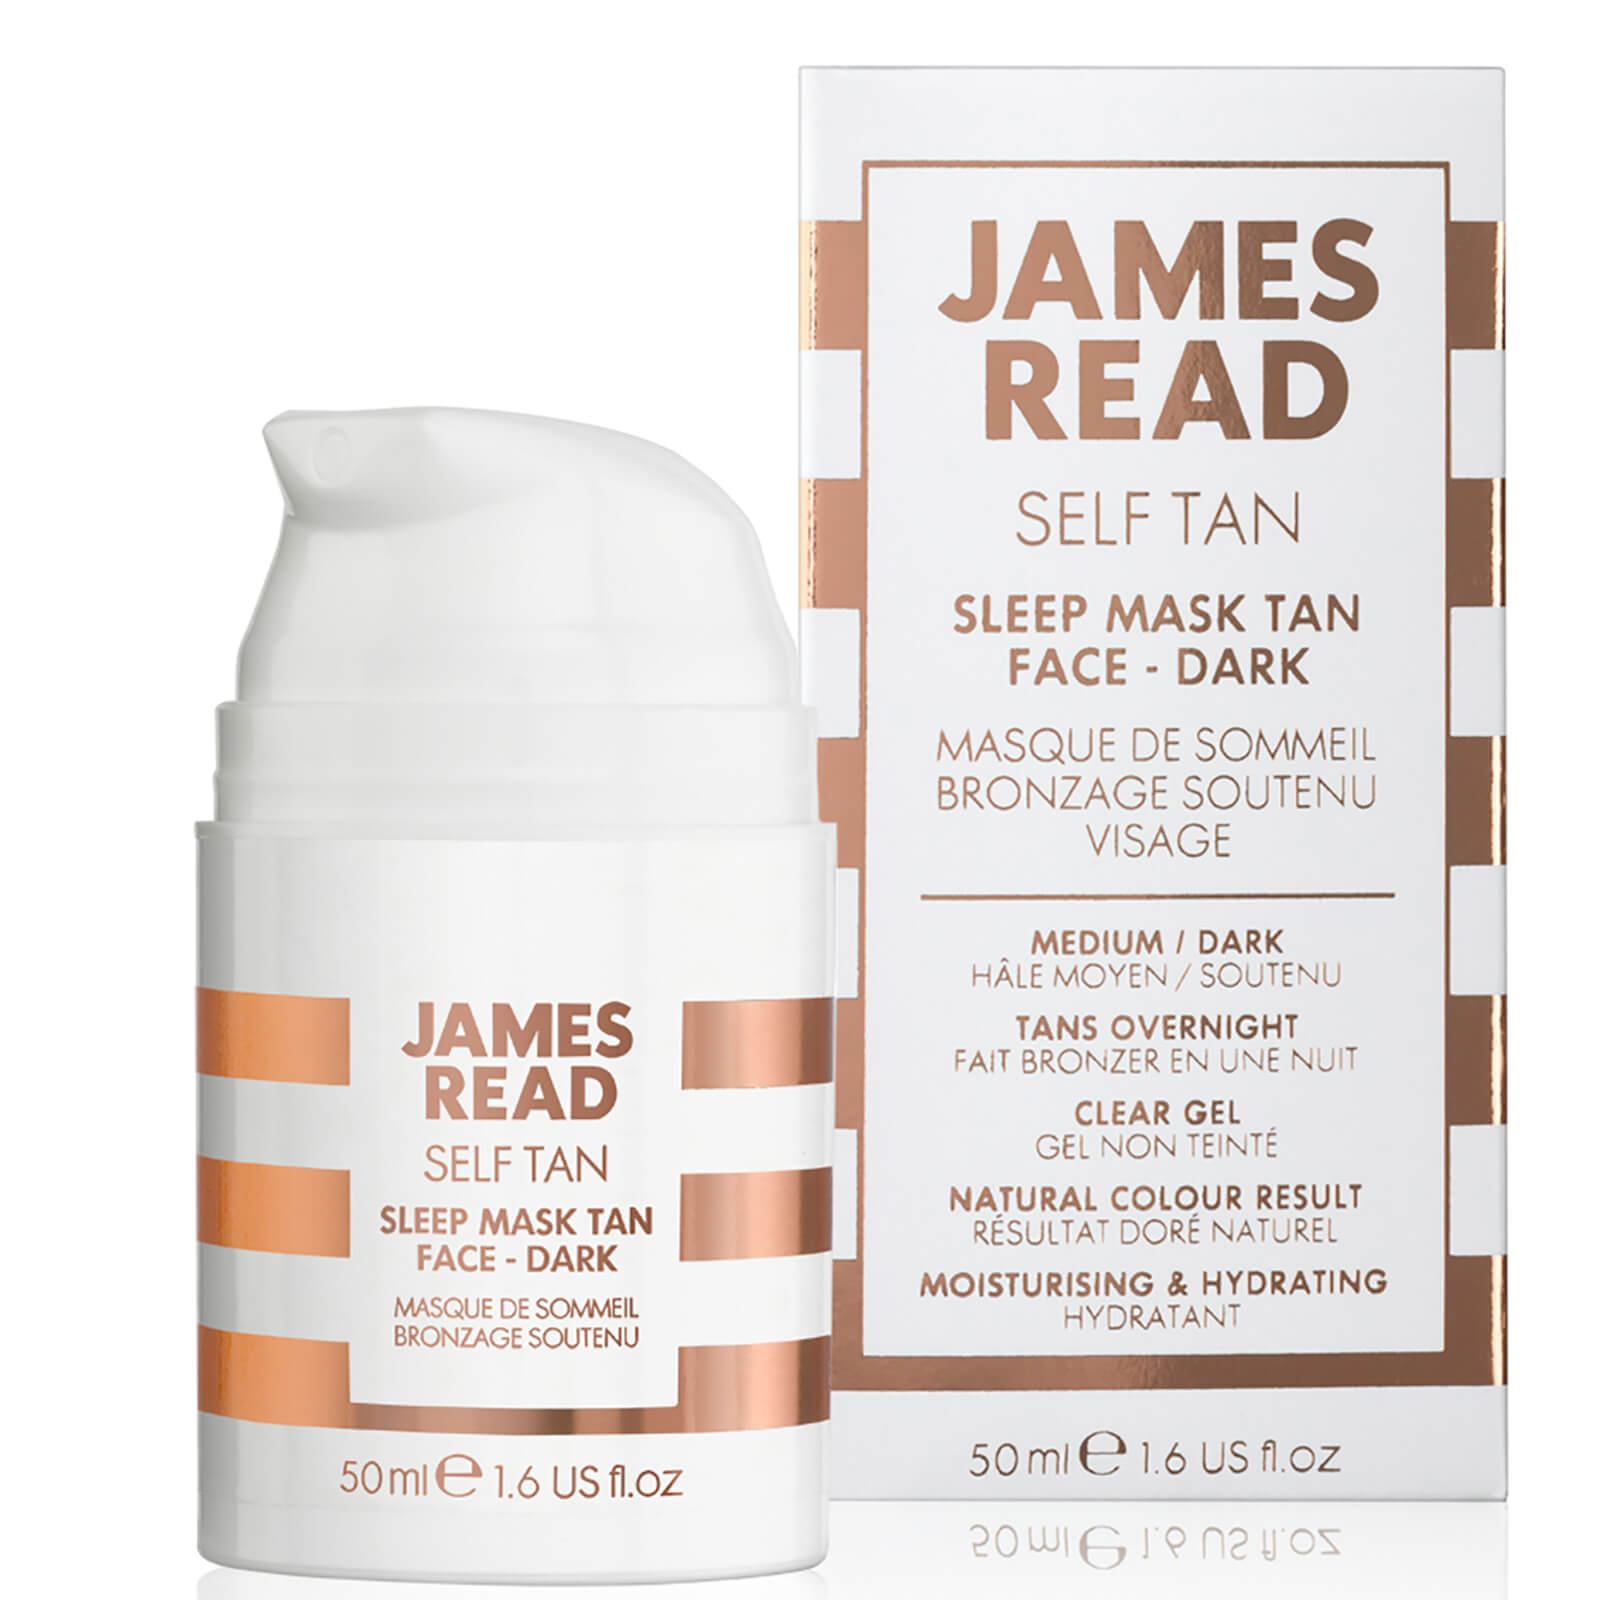 James Read Sleep Mask Tan Go Darker Face 50ml Free Delivery